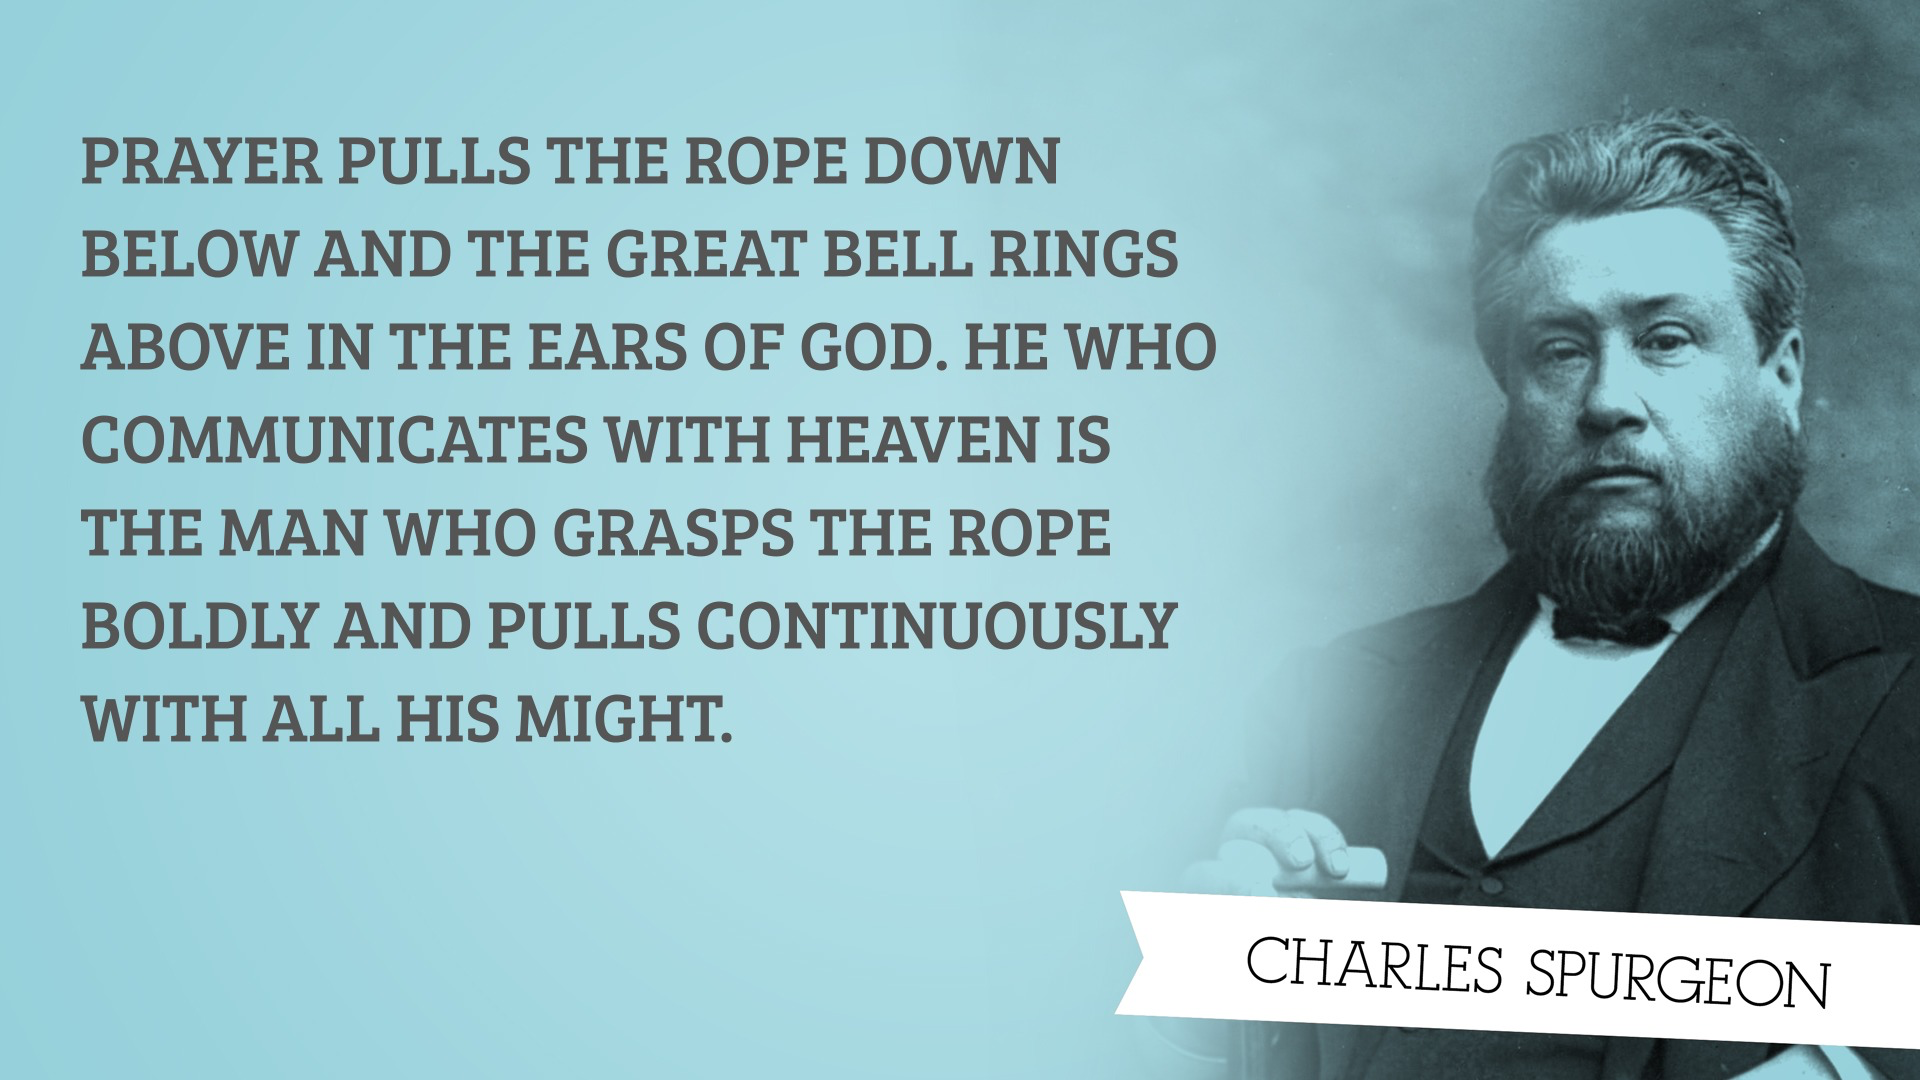 Spurgeon Quotes - prayer.png